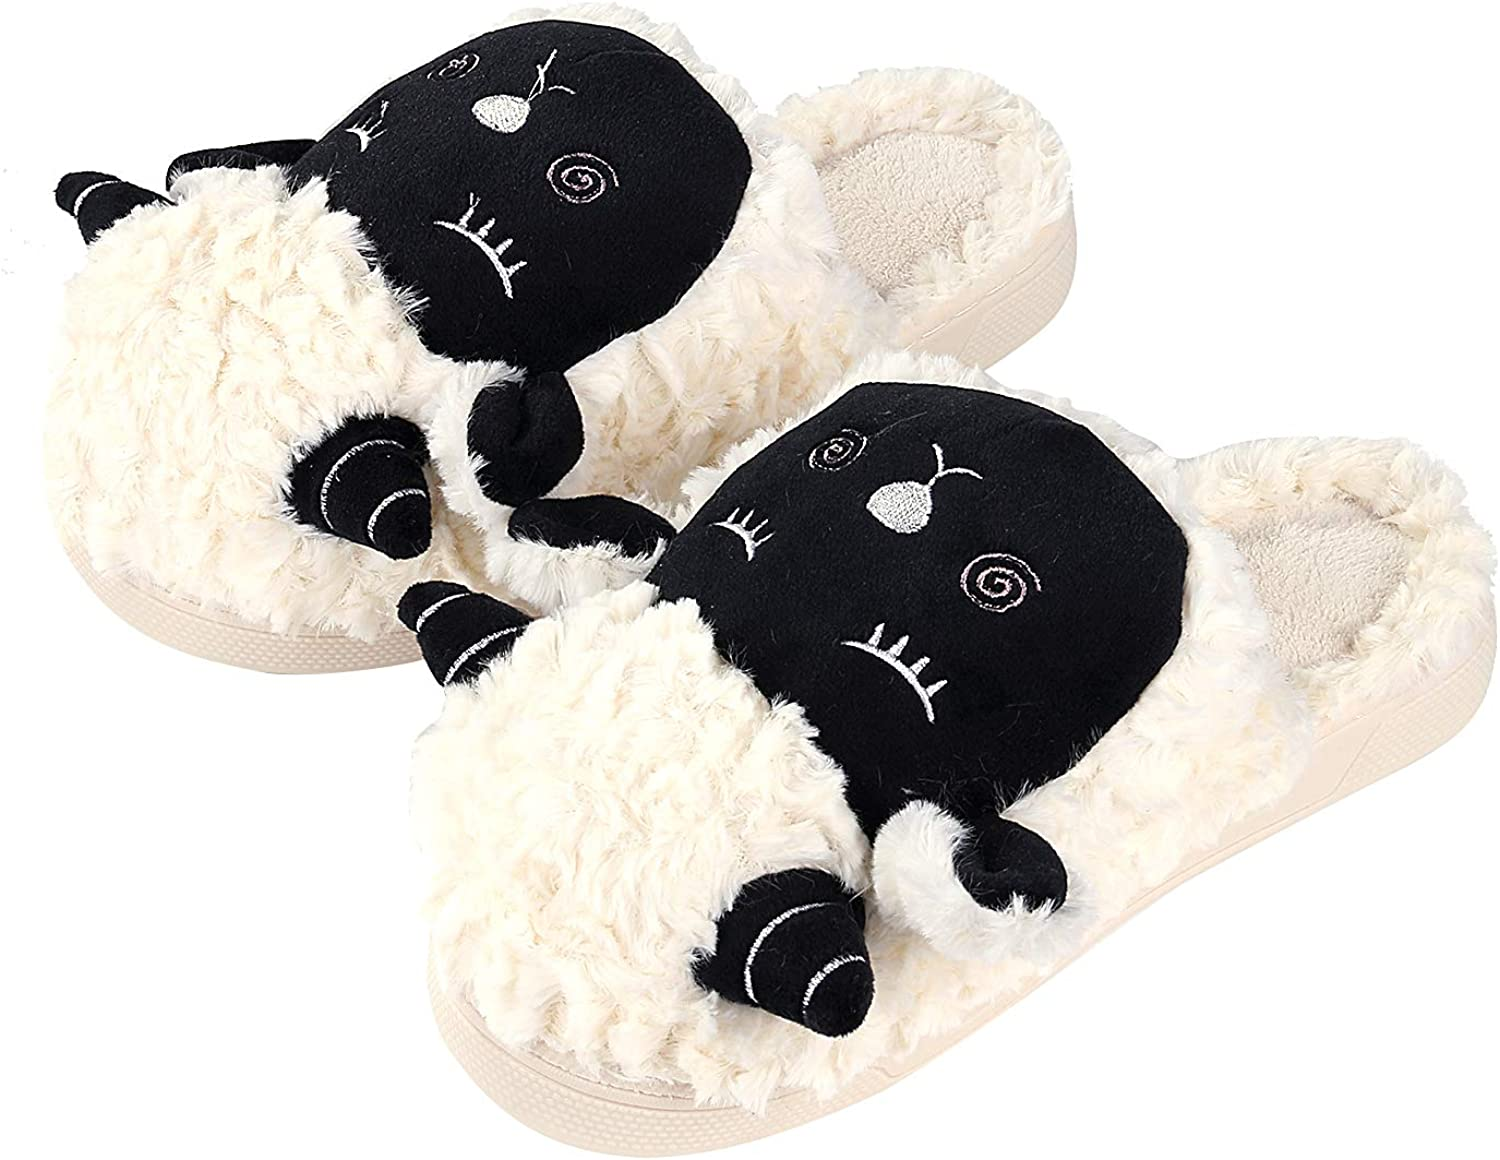 Beslip Women's Comfort Memory Foam Slippers Anti - Skip Indoor Outdoor House shoes Winter Warm Fuzzy Clog House Slippers